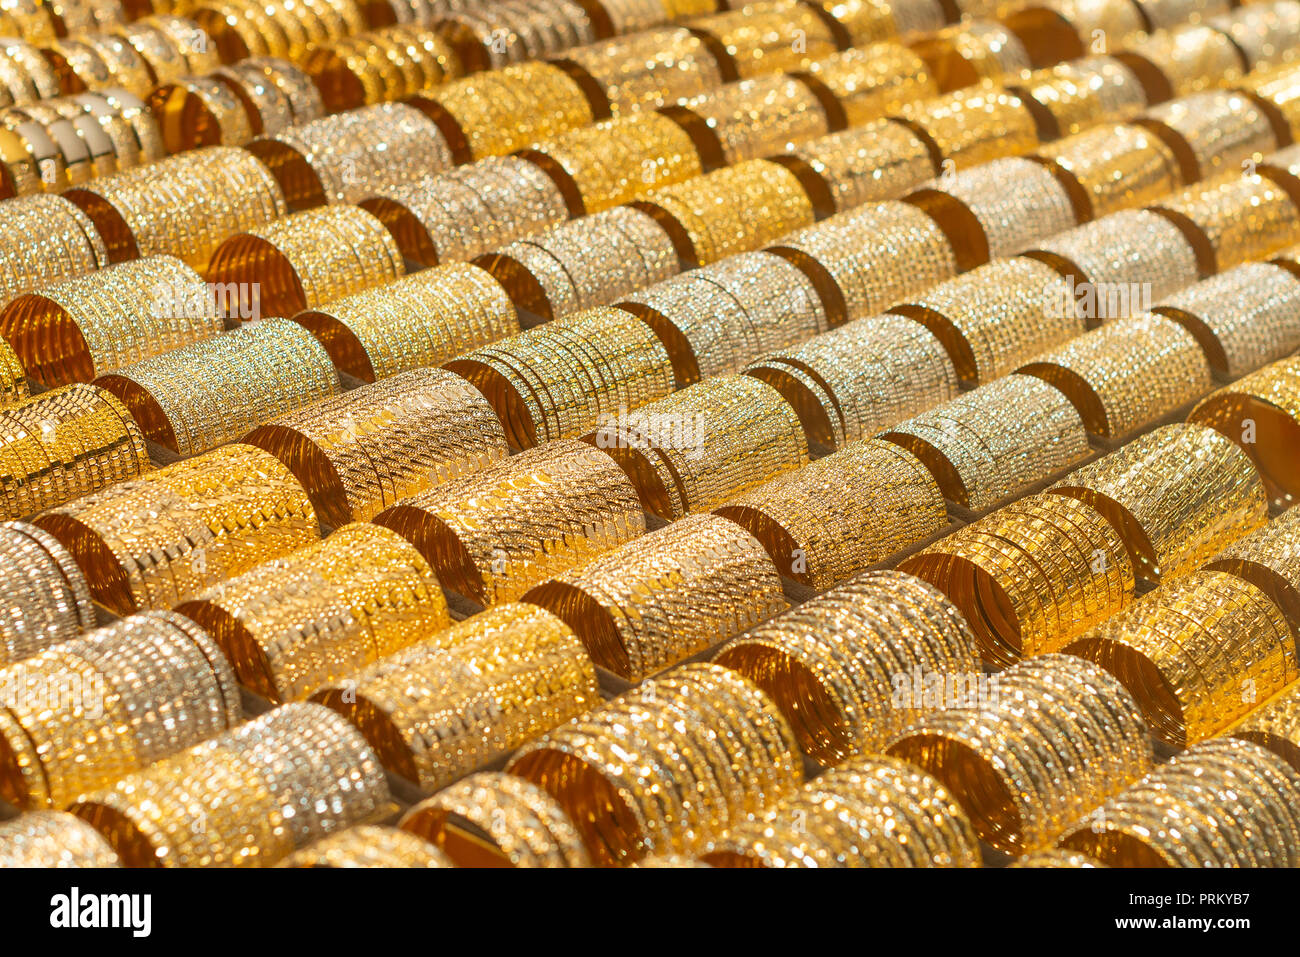 Grand Bazaar in Teheran Iran - gold market with hundreds bracelets, jewelery. - Stock Image